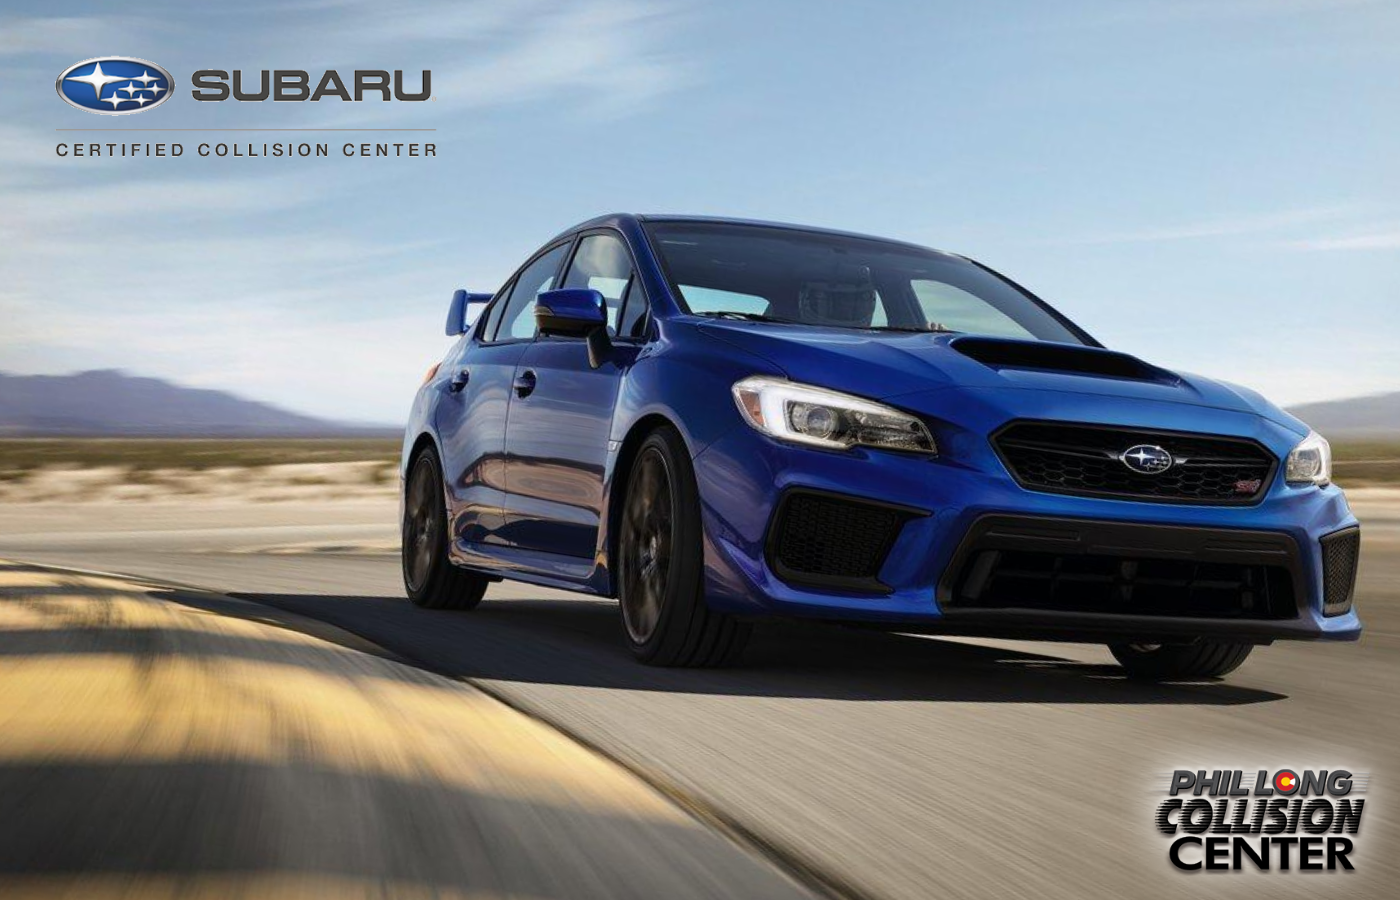 Subaru Certified collision repair body shop in Colorado Springs at Phil Long Collision Center